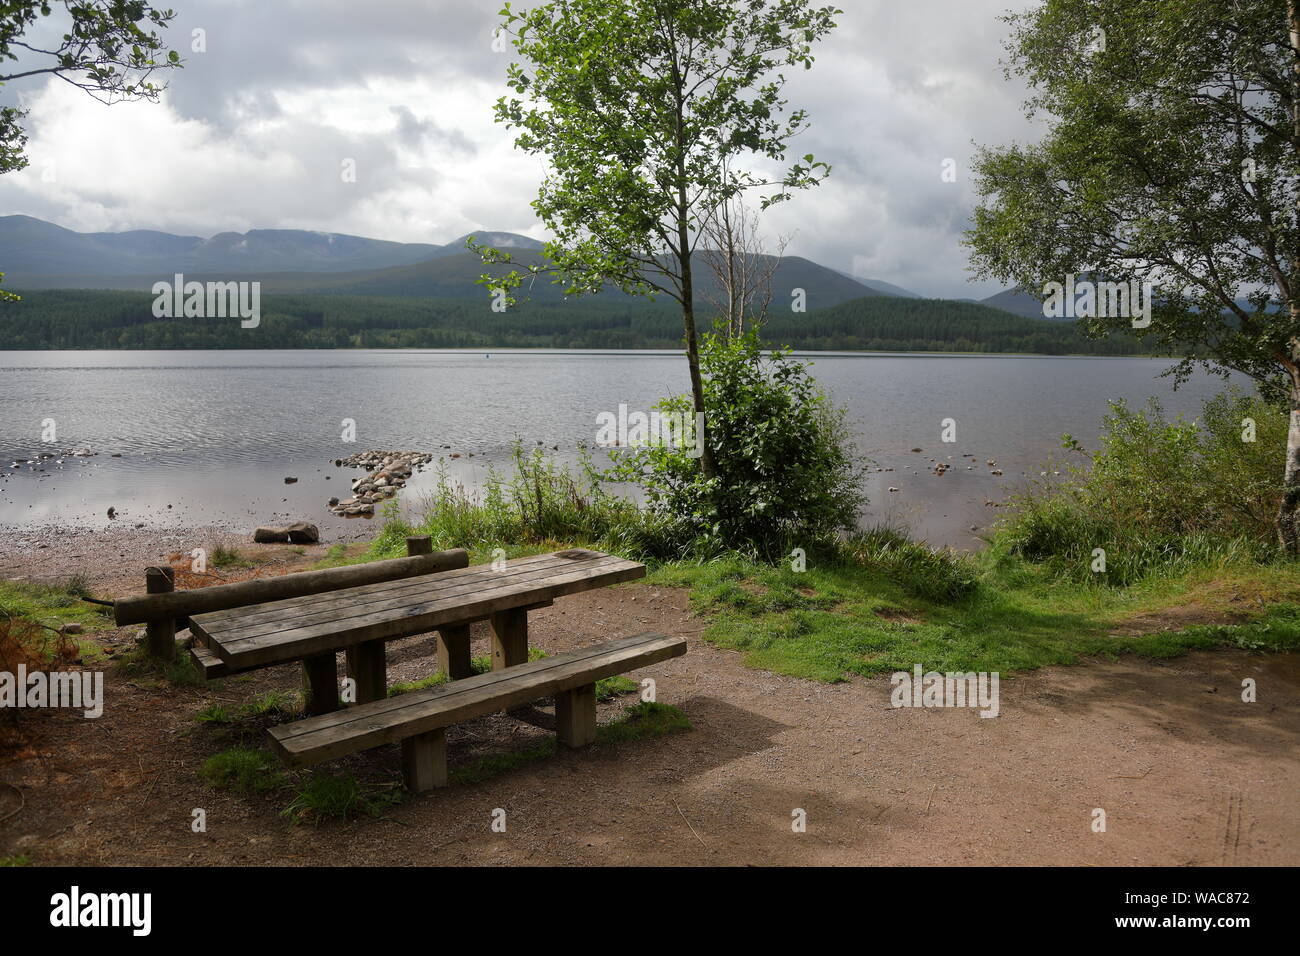 Loch Morlich at the base of the Cairngorms, Scotland, UK. Stock Photo